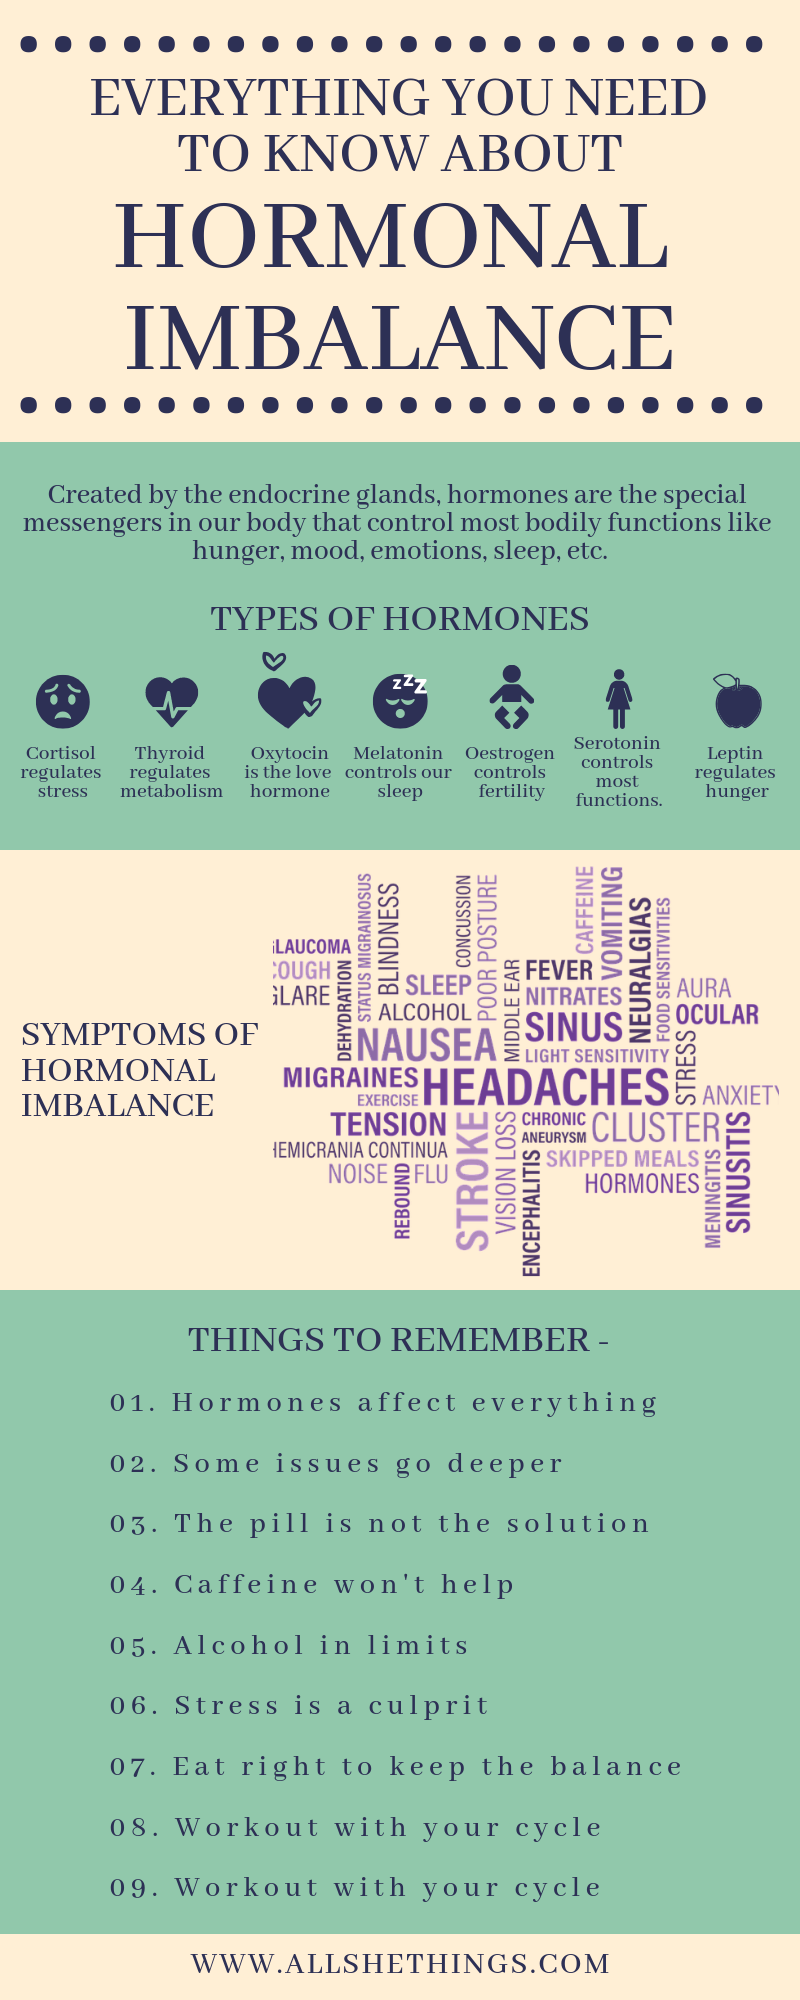 c3ed605cf5c A lot of skin and health issues are caused by hormonal imbalance. Hormones  are responsible for almost all bodily functions so when something goes  wrong with ...